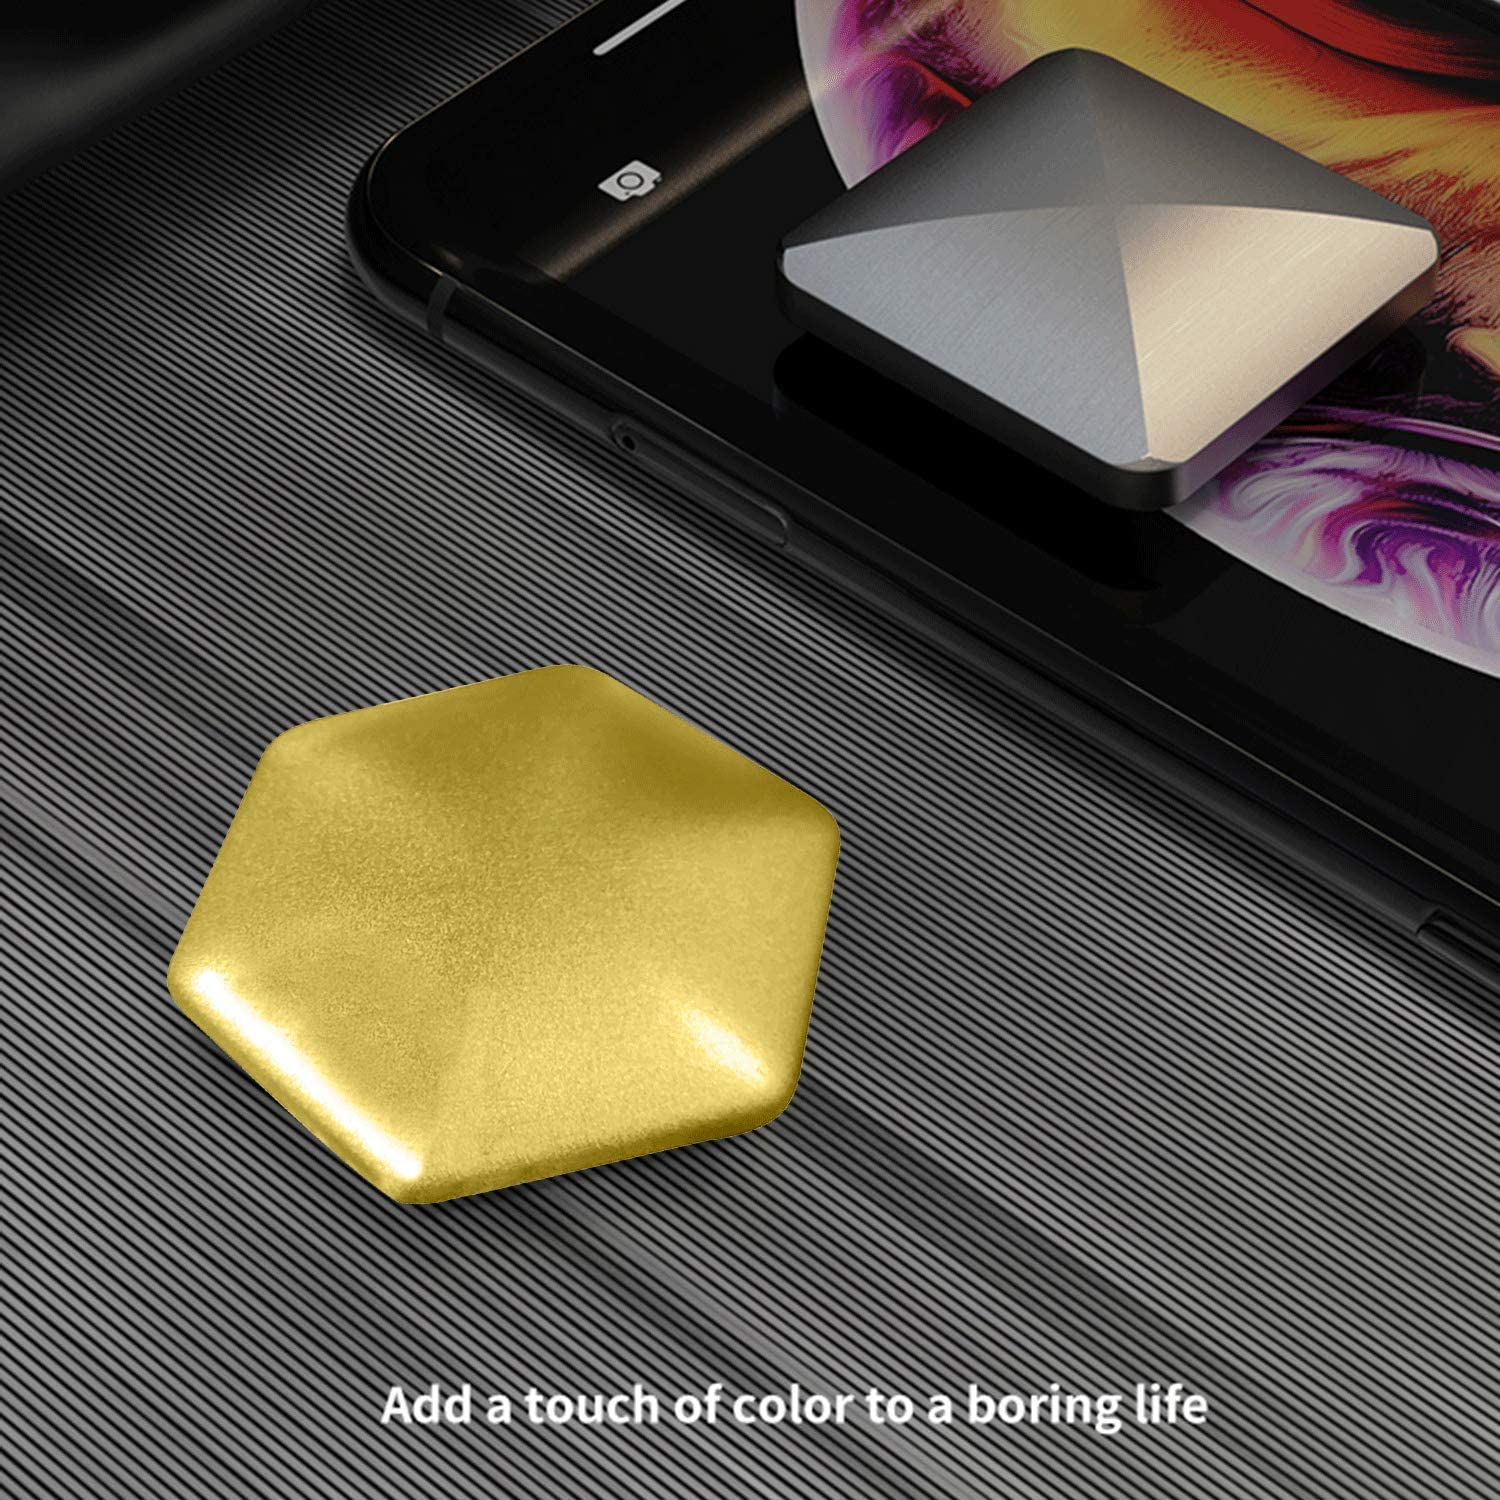 Desktop Flip Spinning Toy Pocket Stress Relieve Toy Plastic Fingertip Decompression Flip Stress Relief Office Rotary Decompiression Toy CaLeQi Flip Toy Quadrilateral